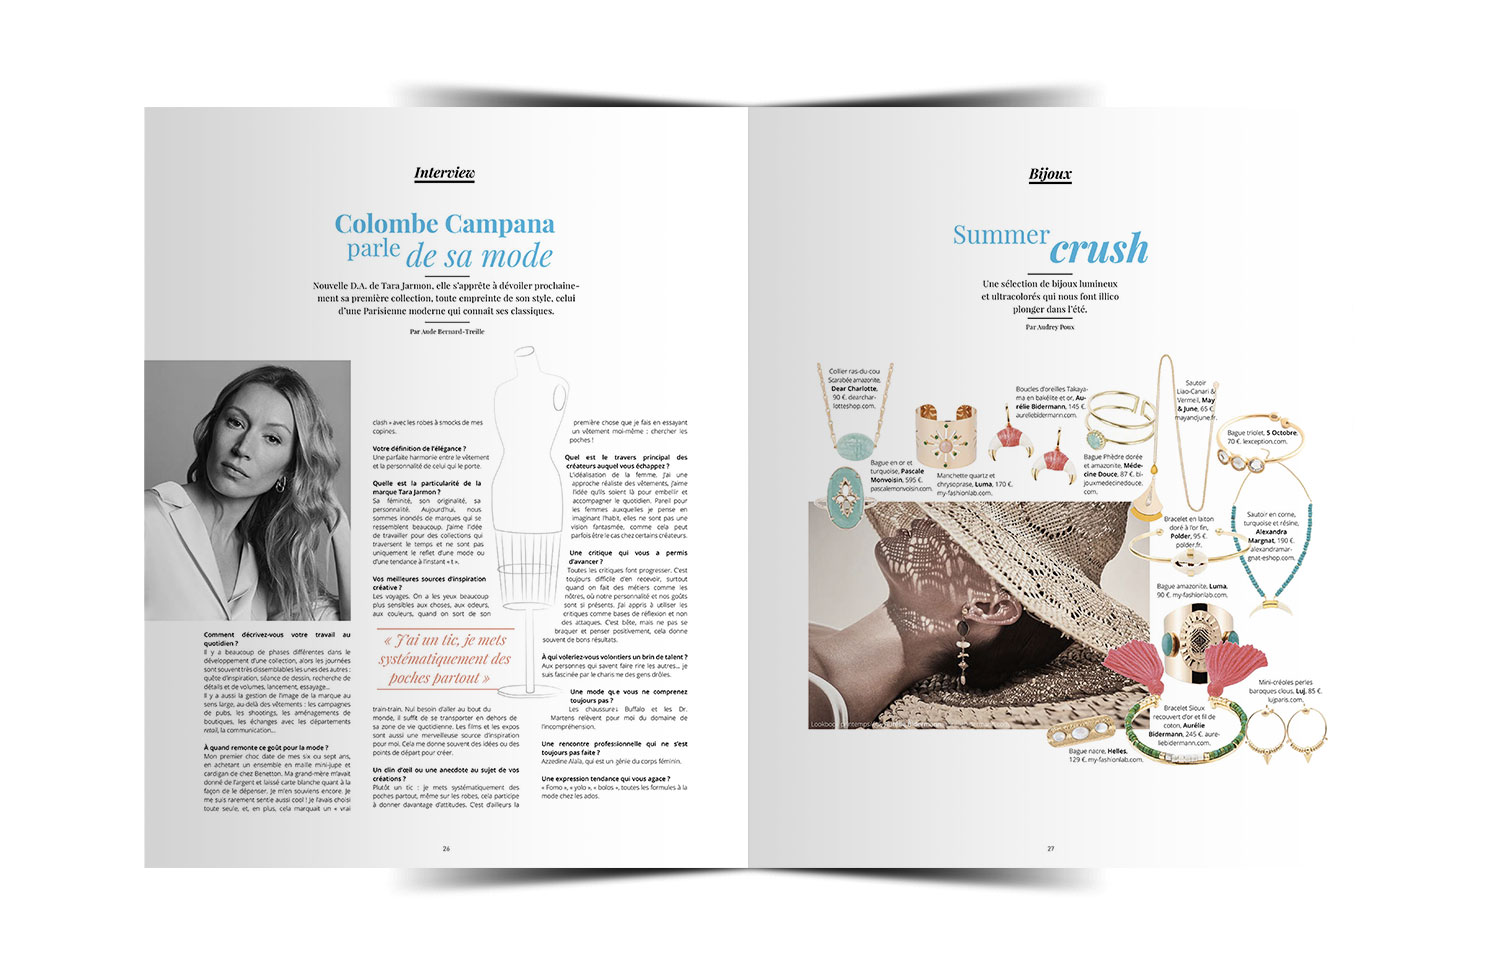 infrarouge-magazine-juillet-aout-2017-190-26-27